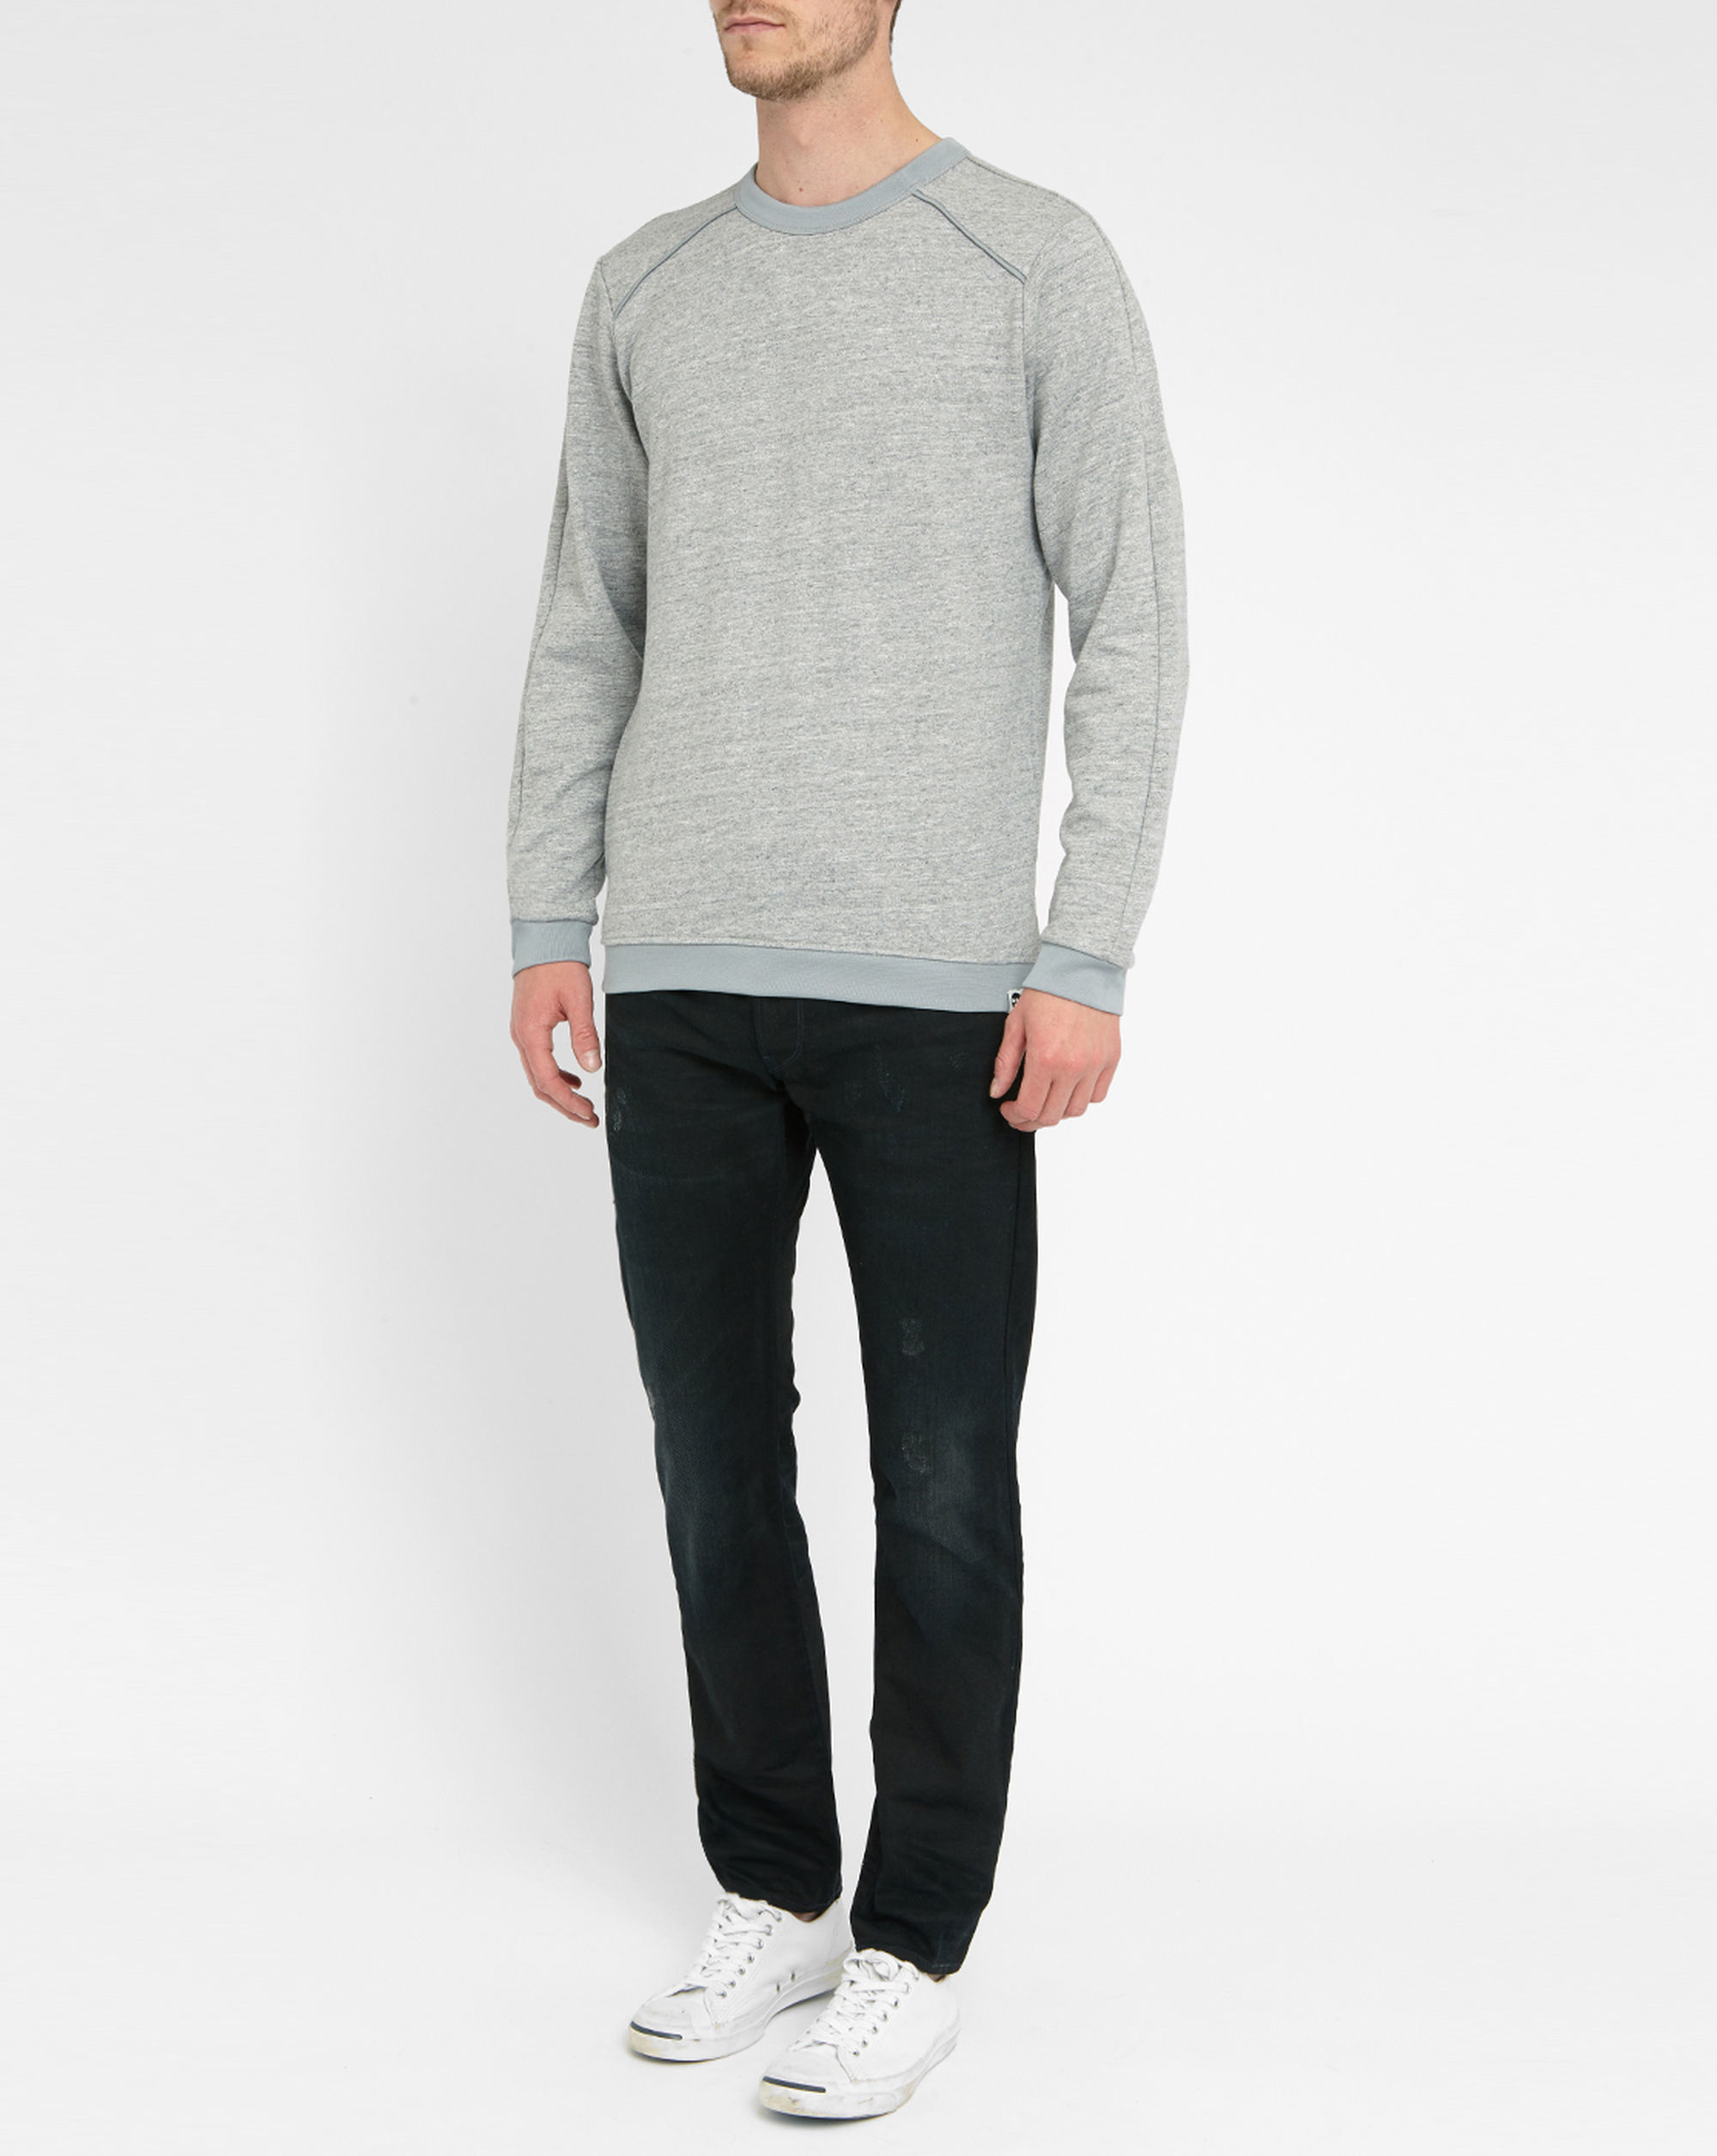 g star raw grey sweatshirt in gray for men lyst. Black Bedroom Furniture Sets. Home Design Ideas